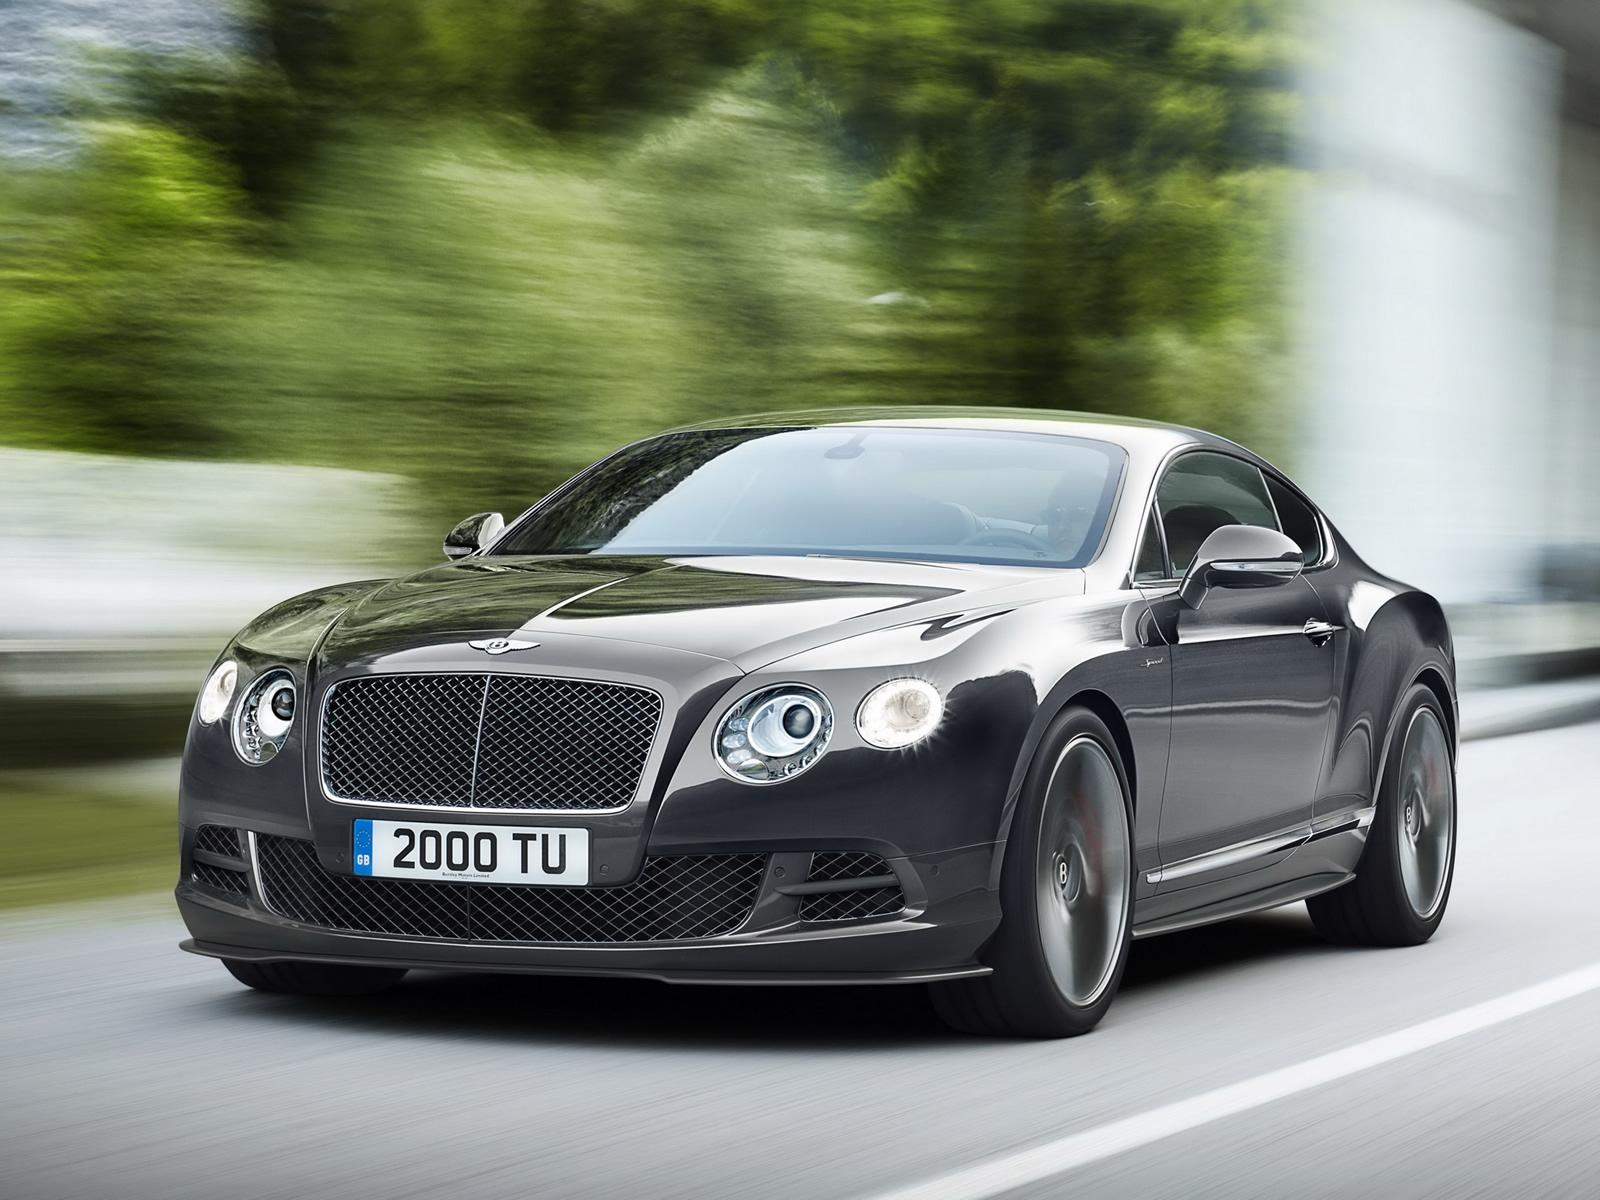 2014 Bentley Continental Gt Speed Introduced With Even More Power Autoevolution